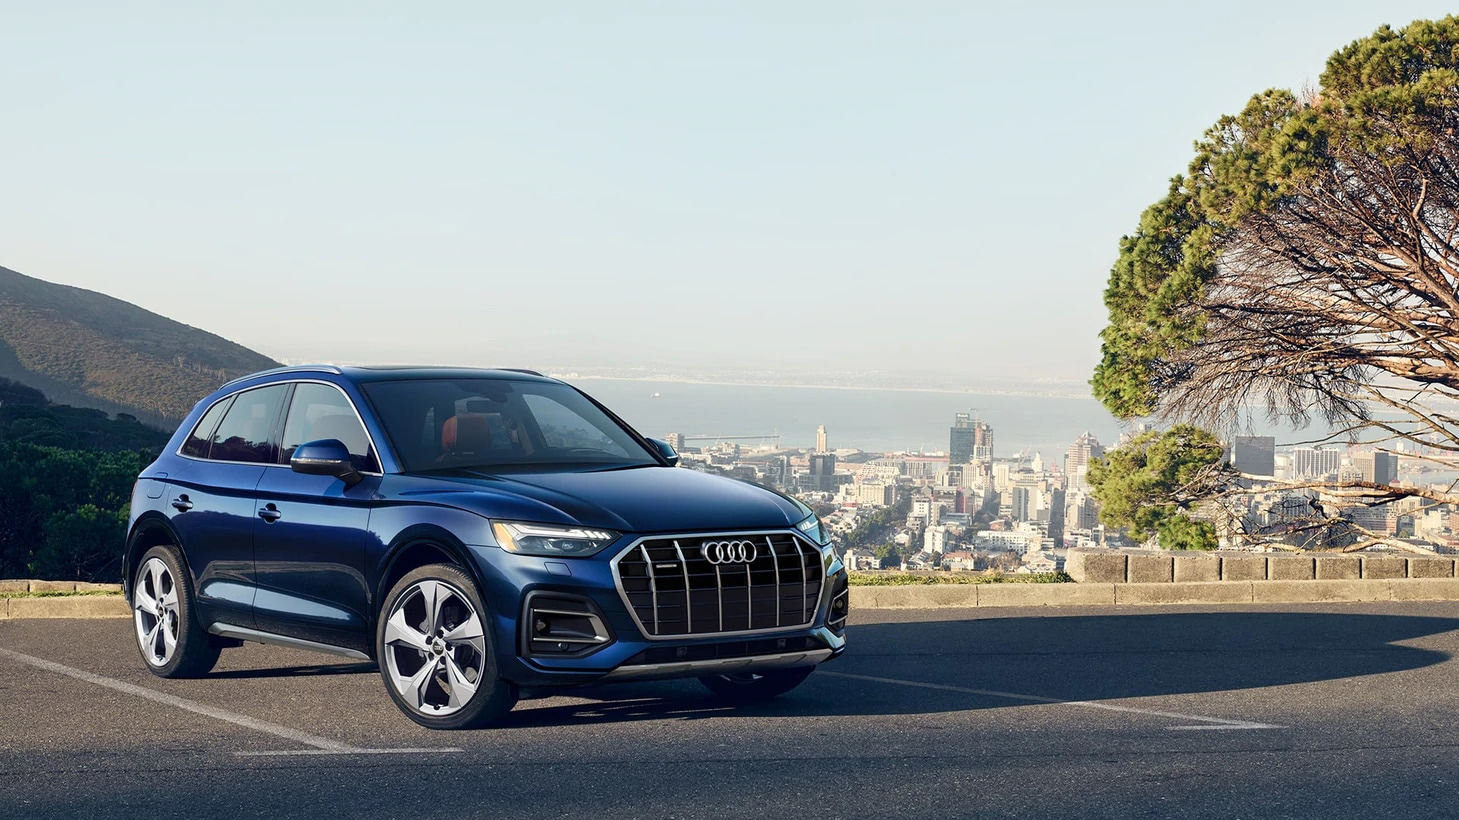 2021 Audi Q5 Prestige in Navarra Blue metallic